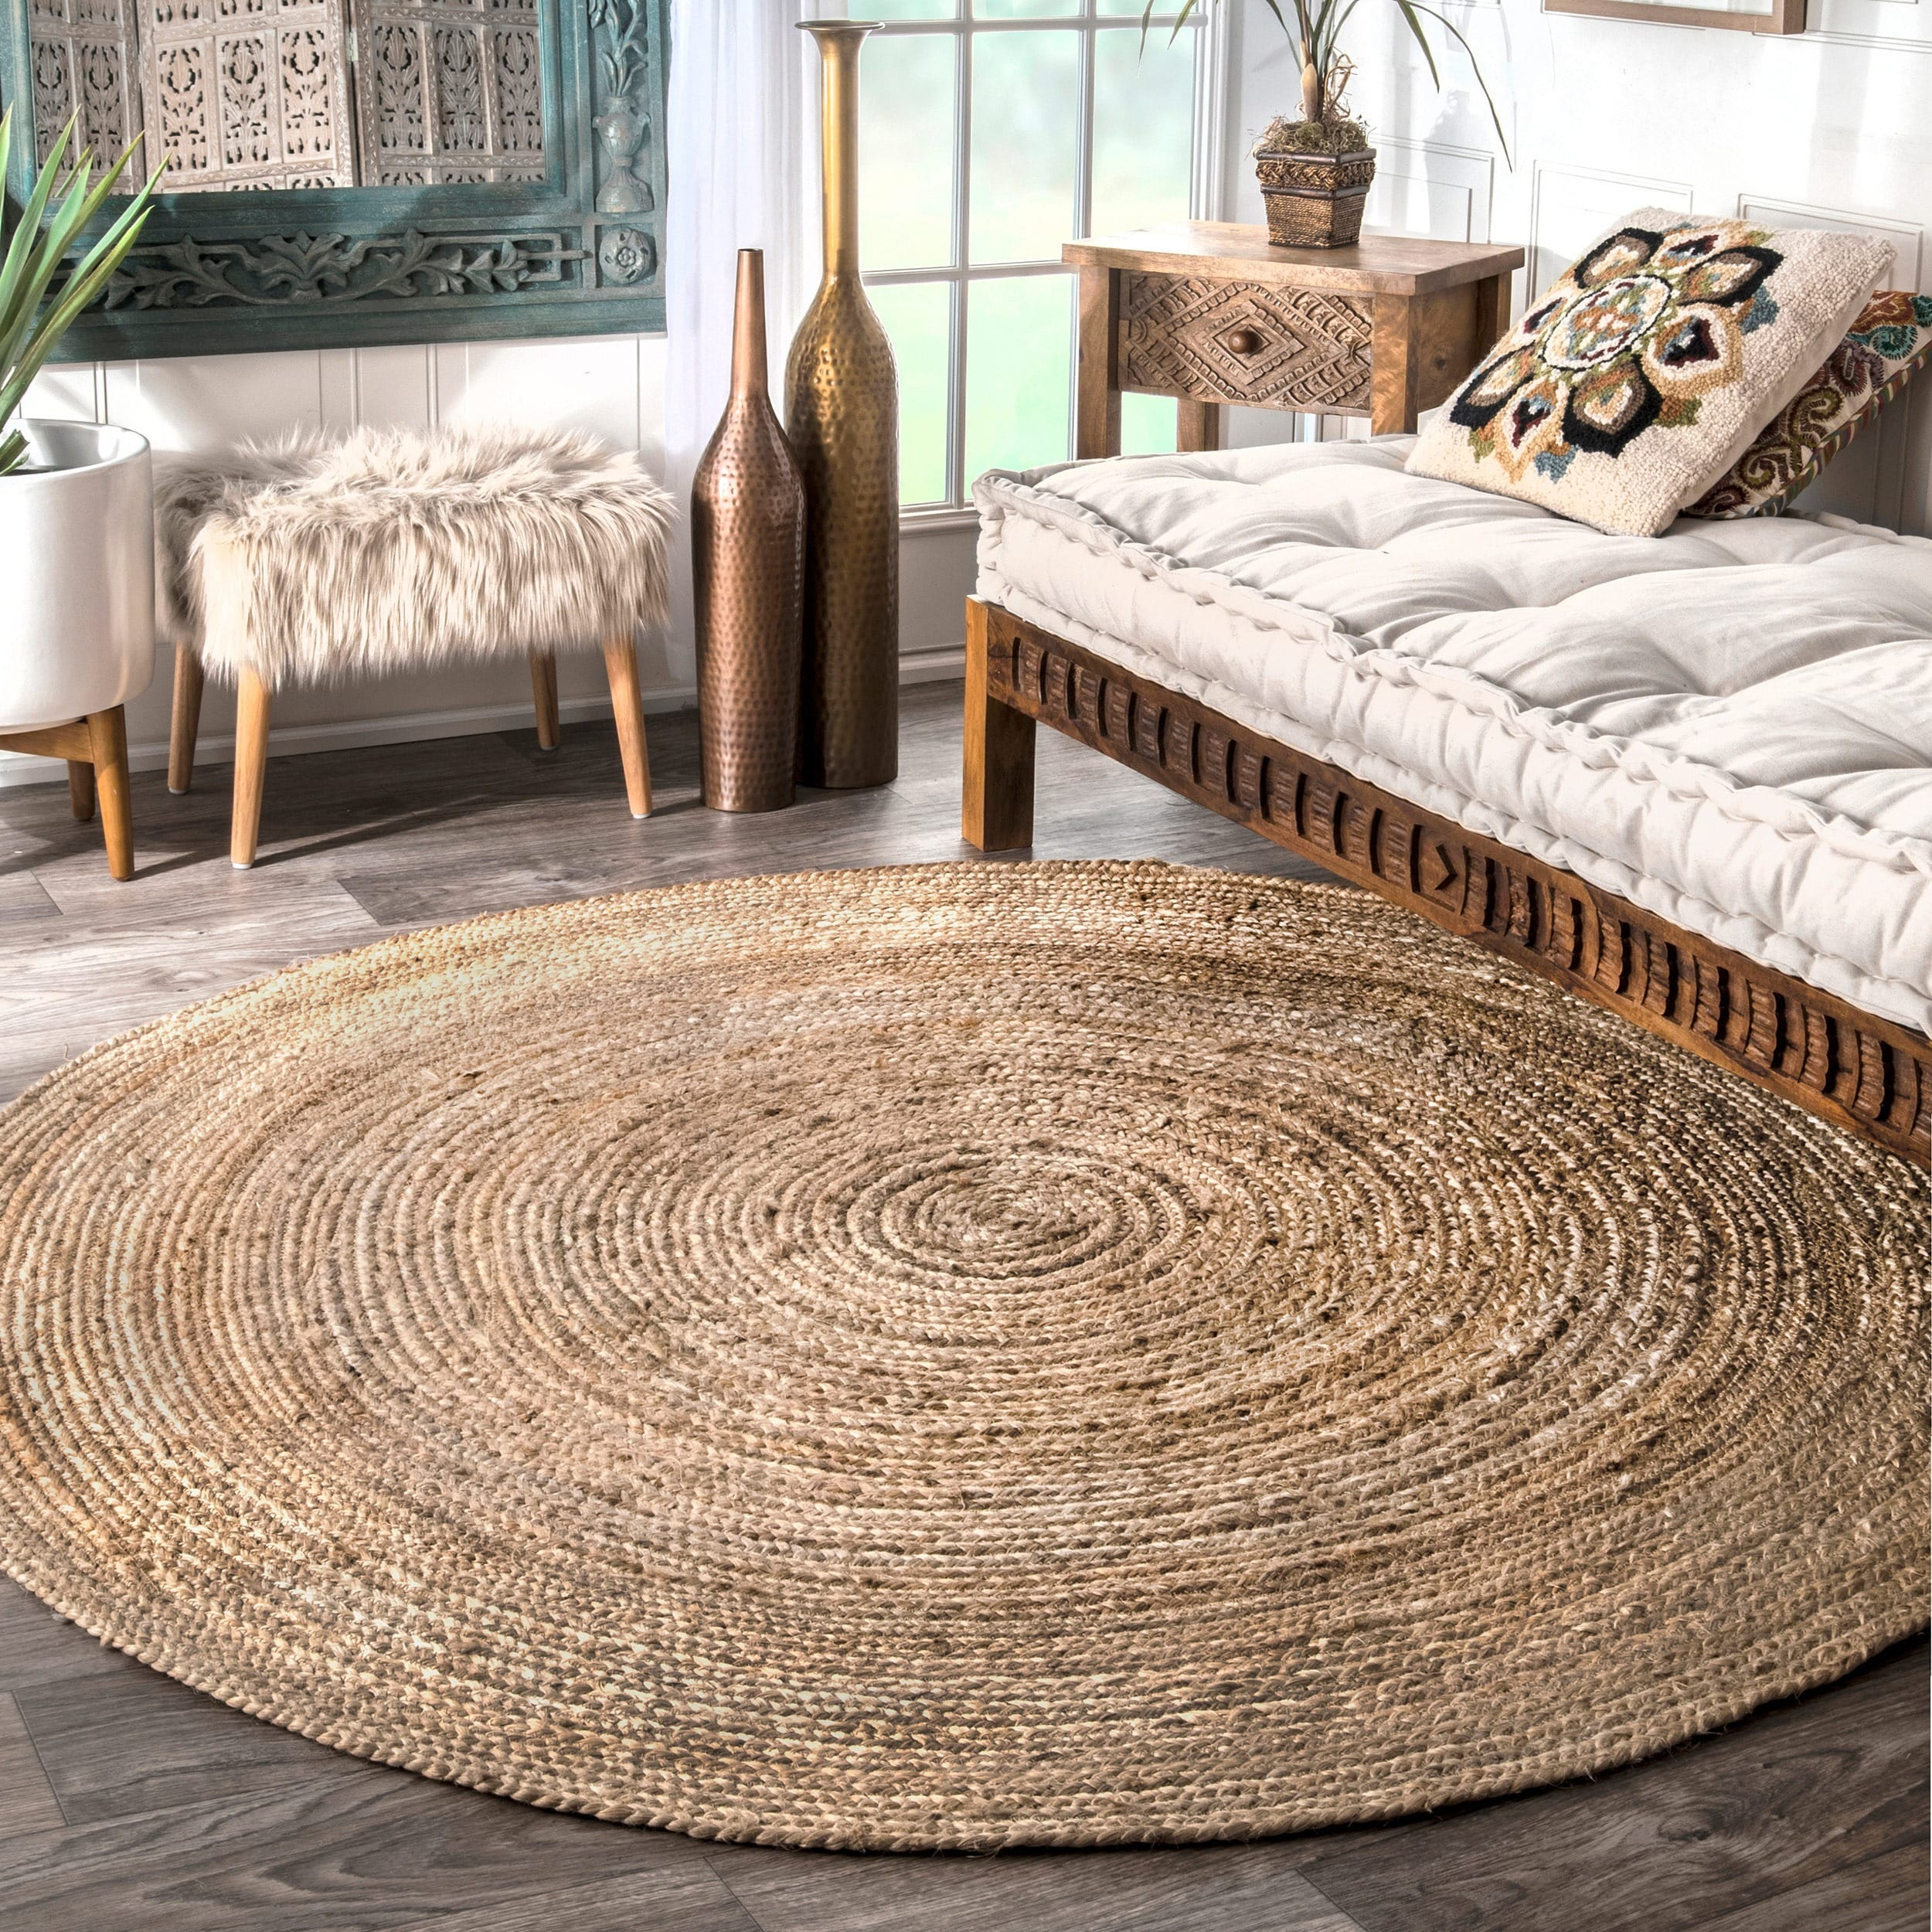 jute oval rugs rug area rectangle braided